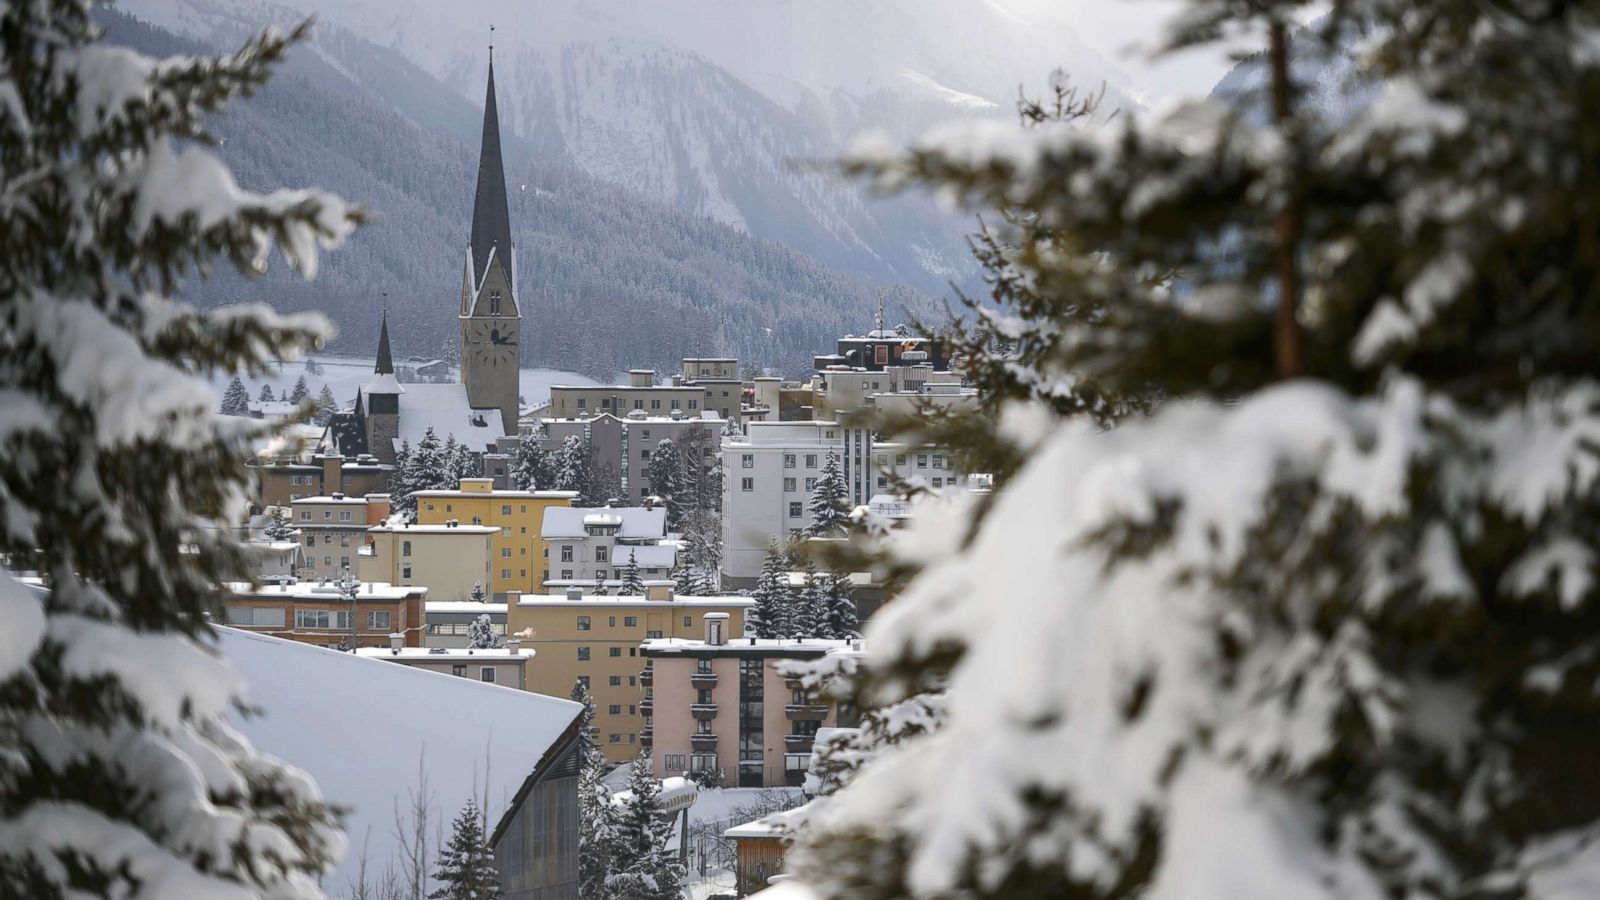 World Economic Forum 2019: What to expect from this year's summit in Davos - ABC News